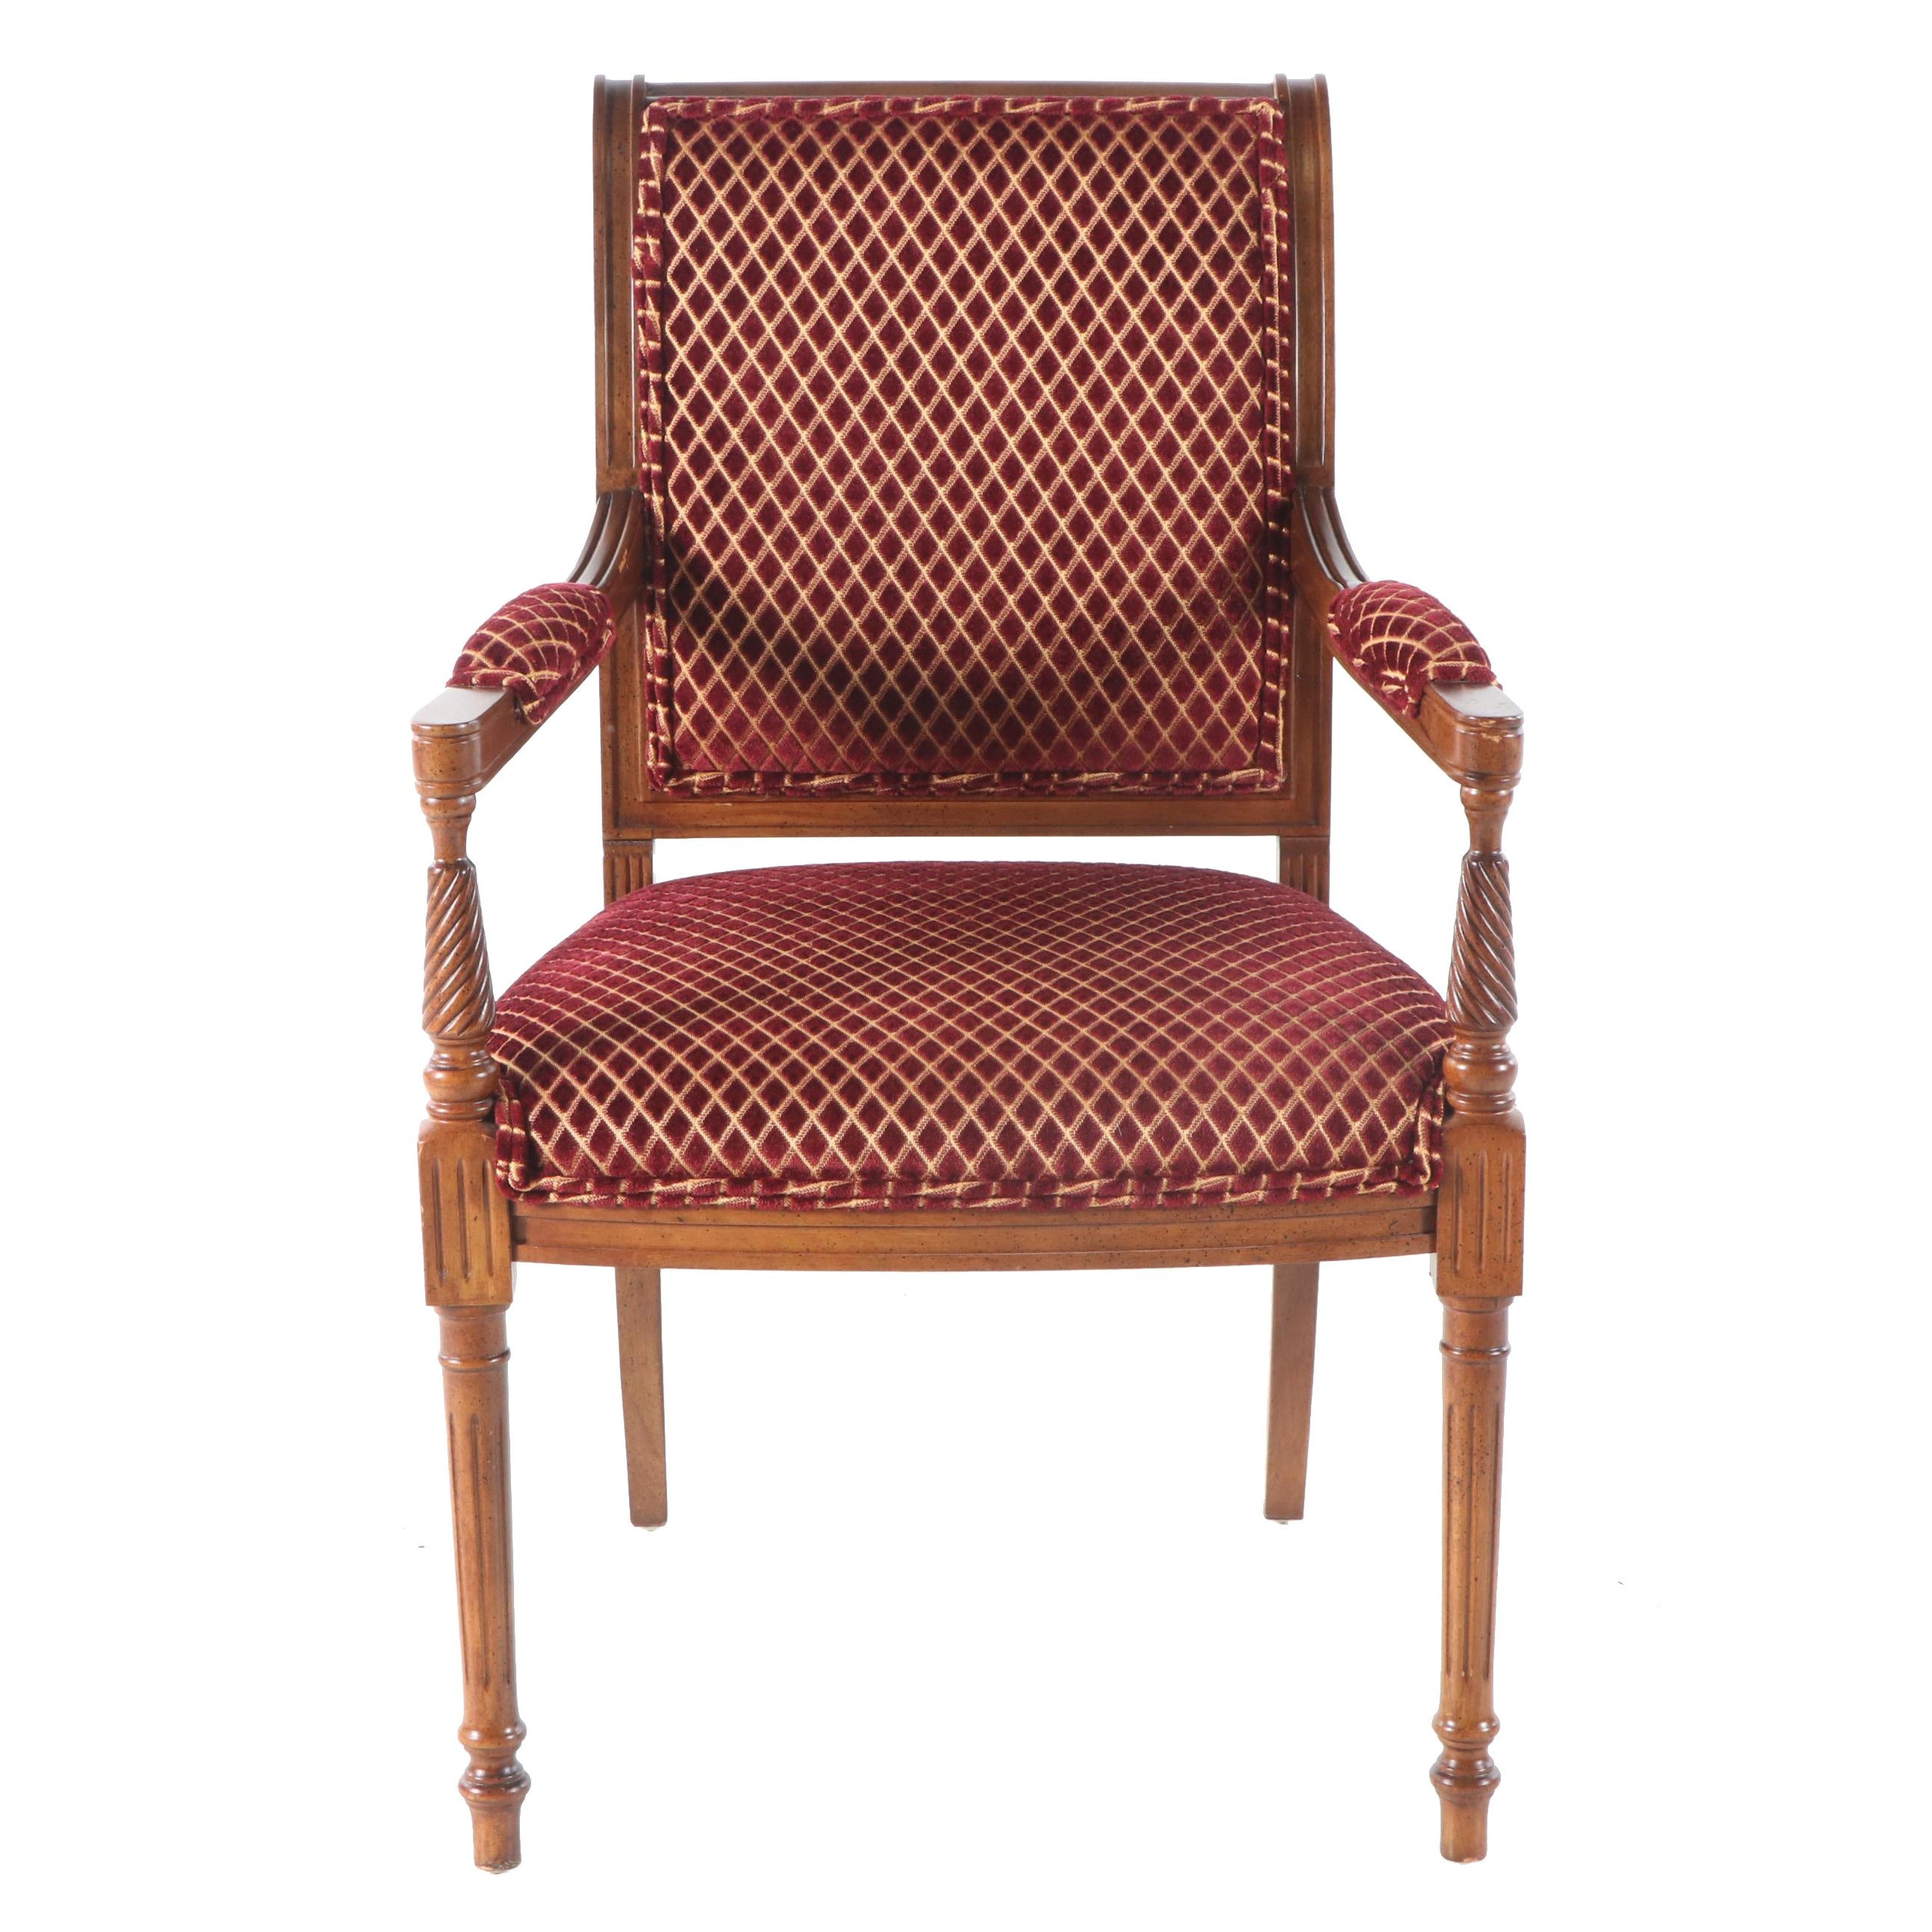 Regency Style Upholstered Armchair, 20th Century